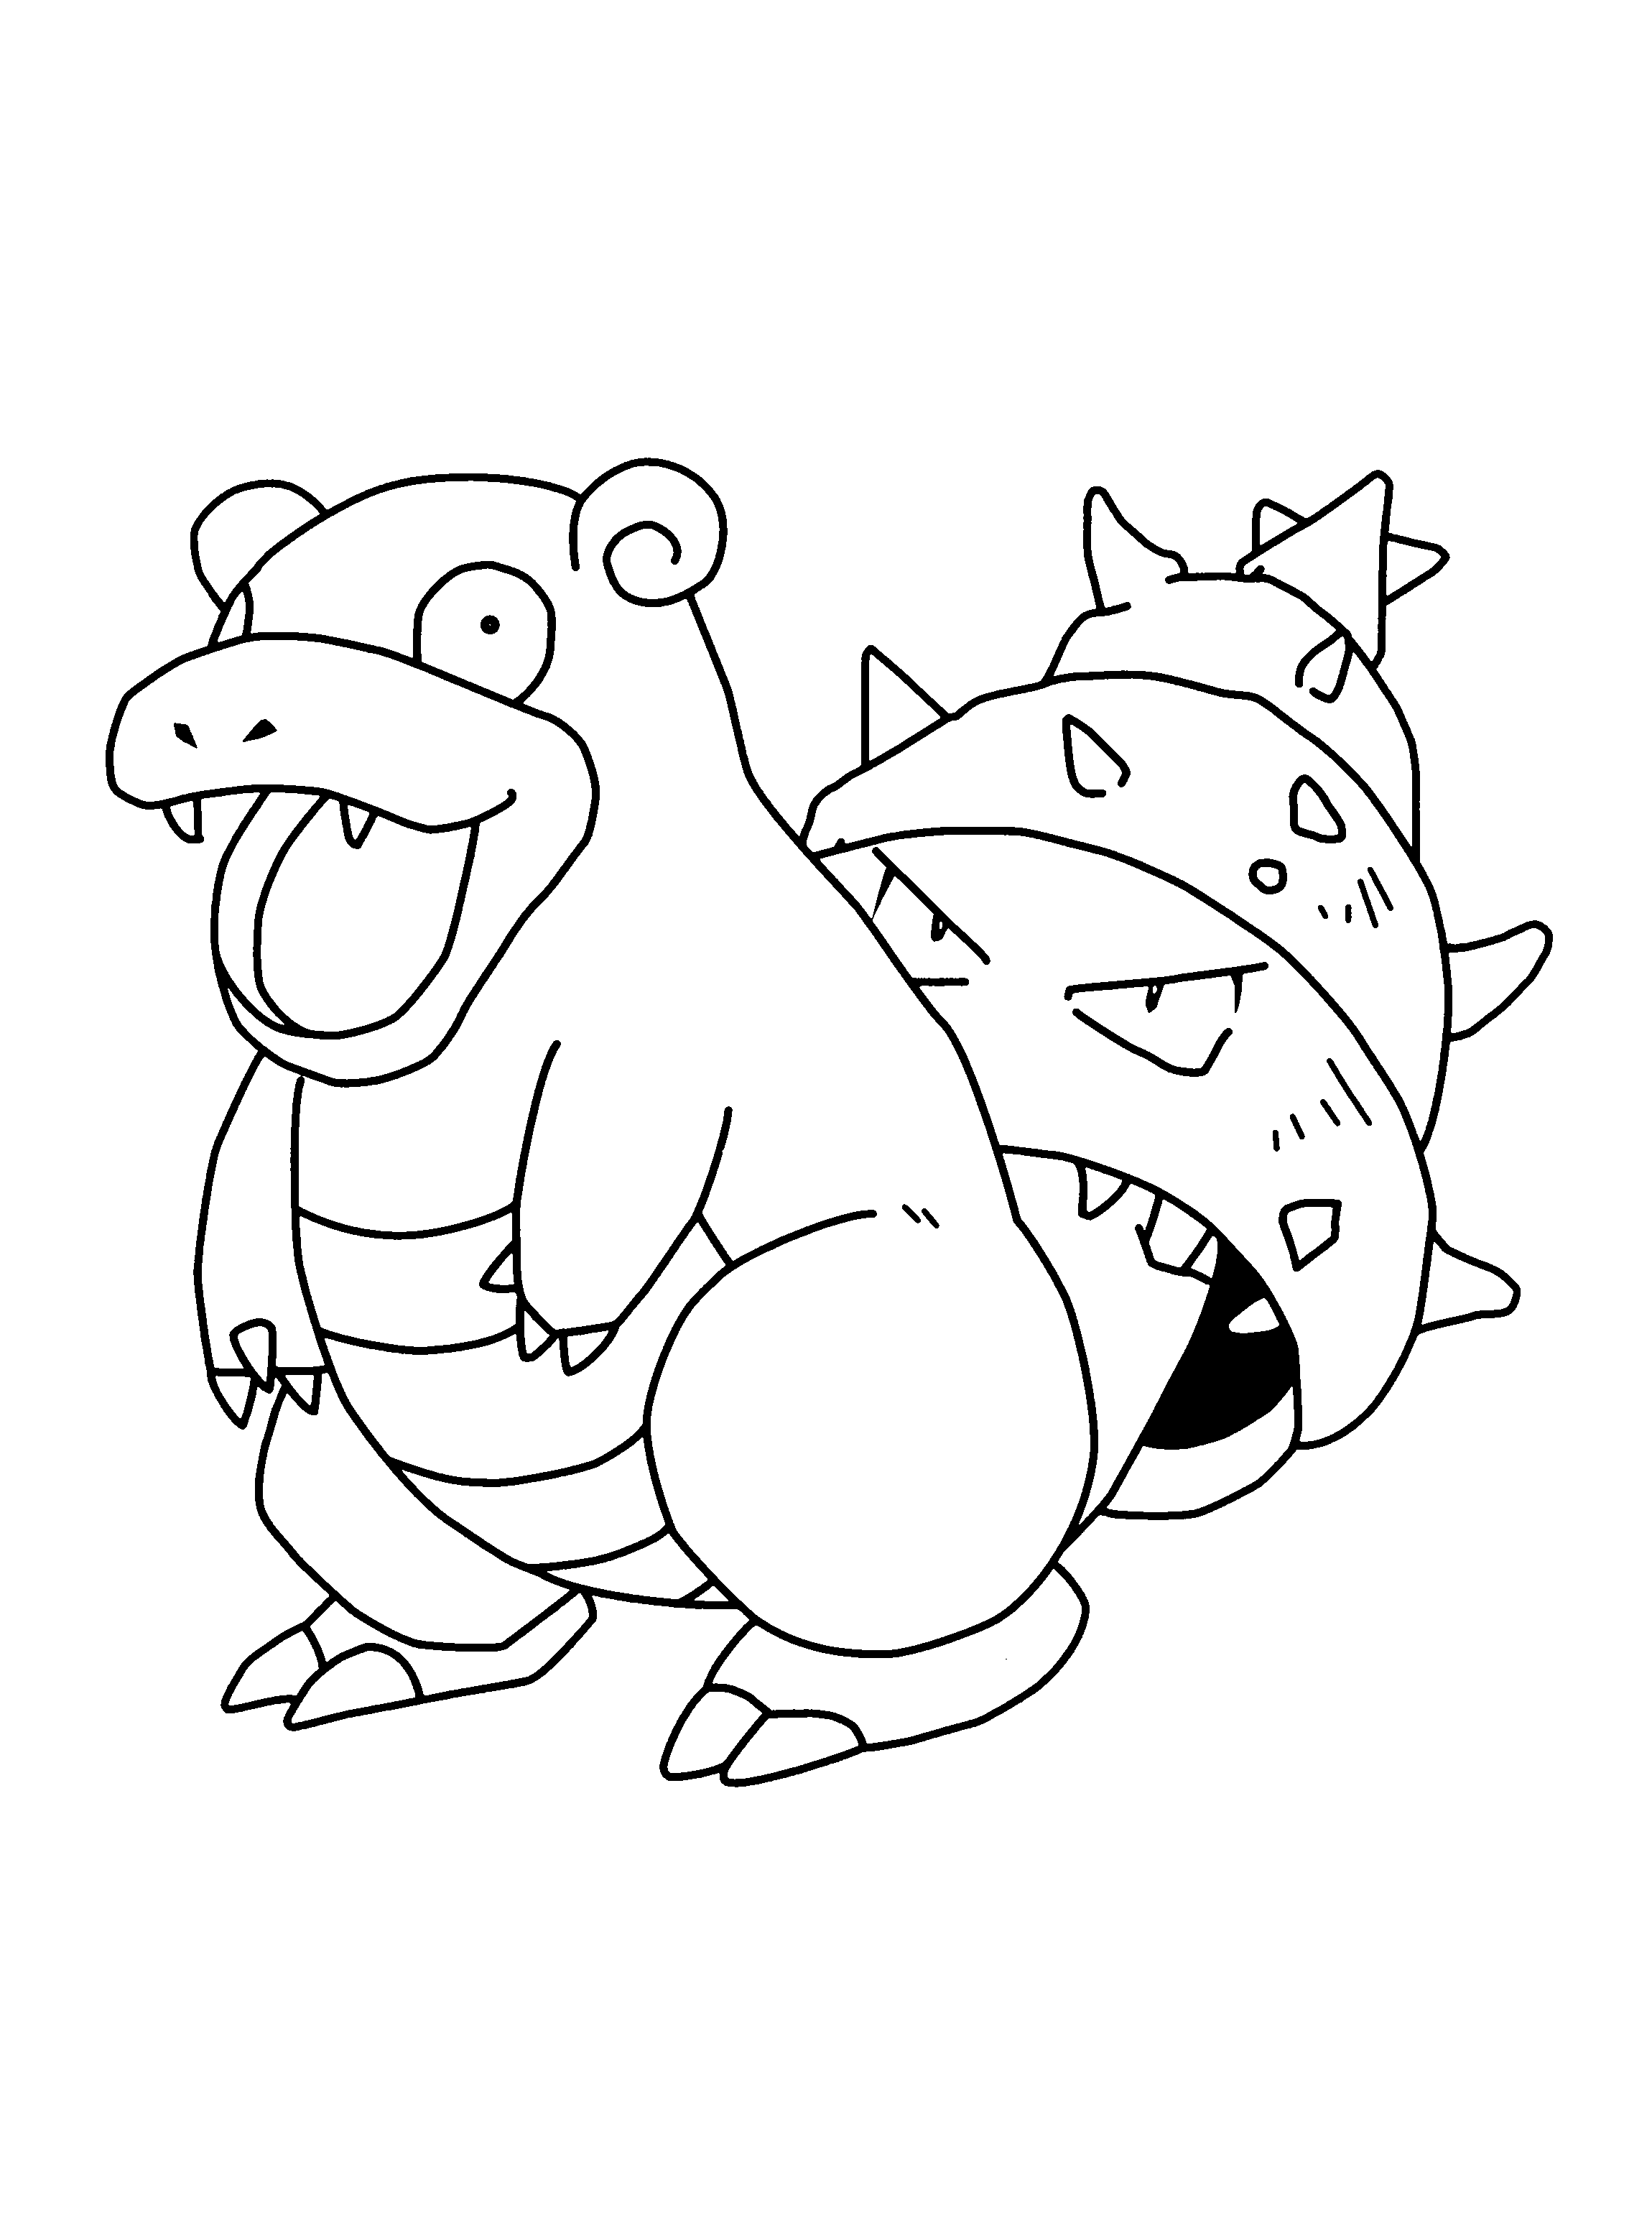 Pokemon coloring pages mega sceptile - Pokemon Coloring Pages